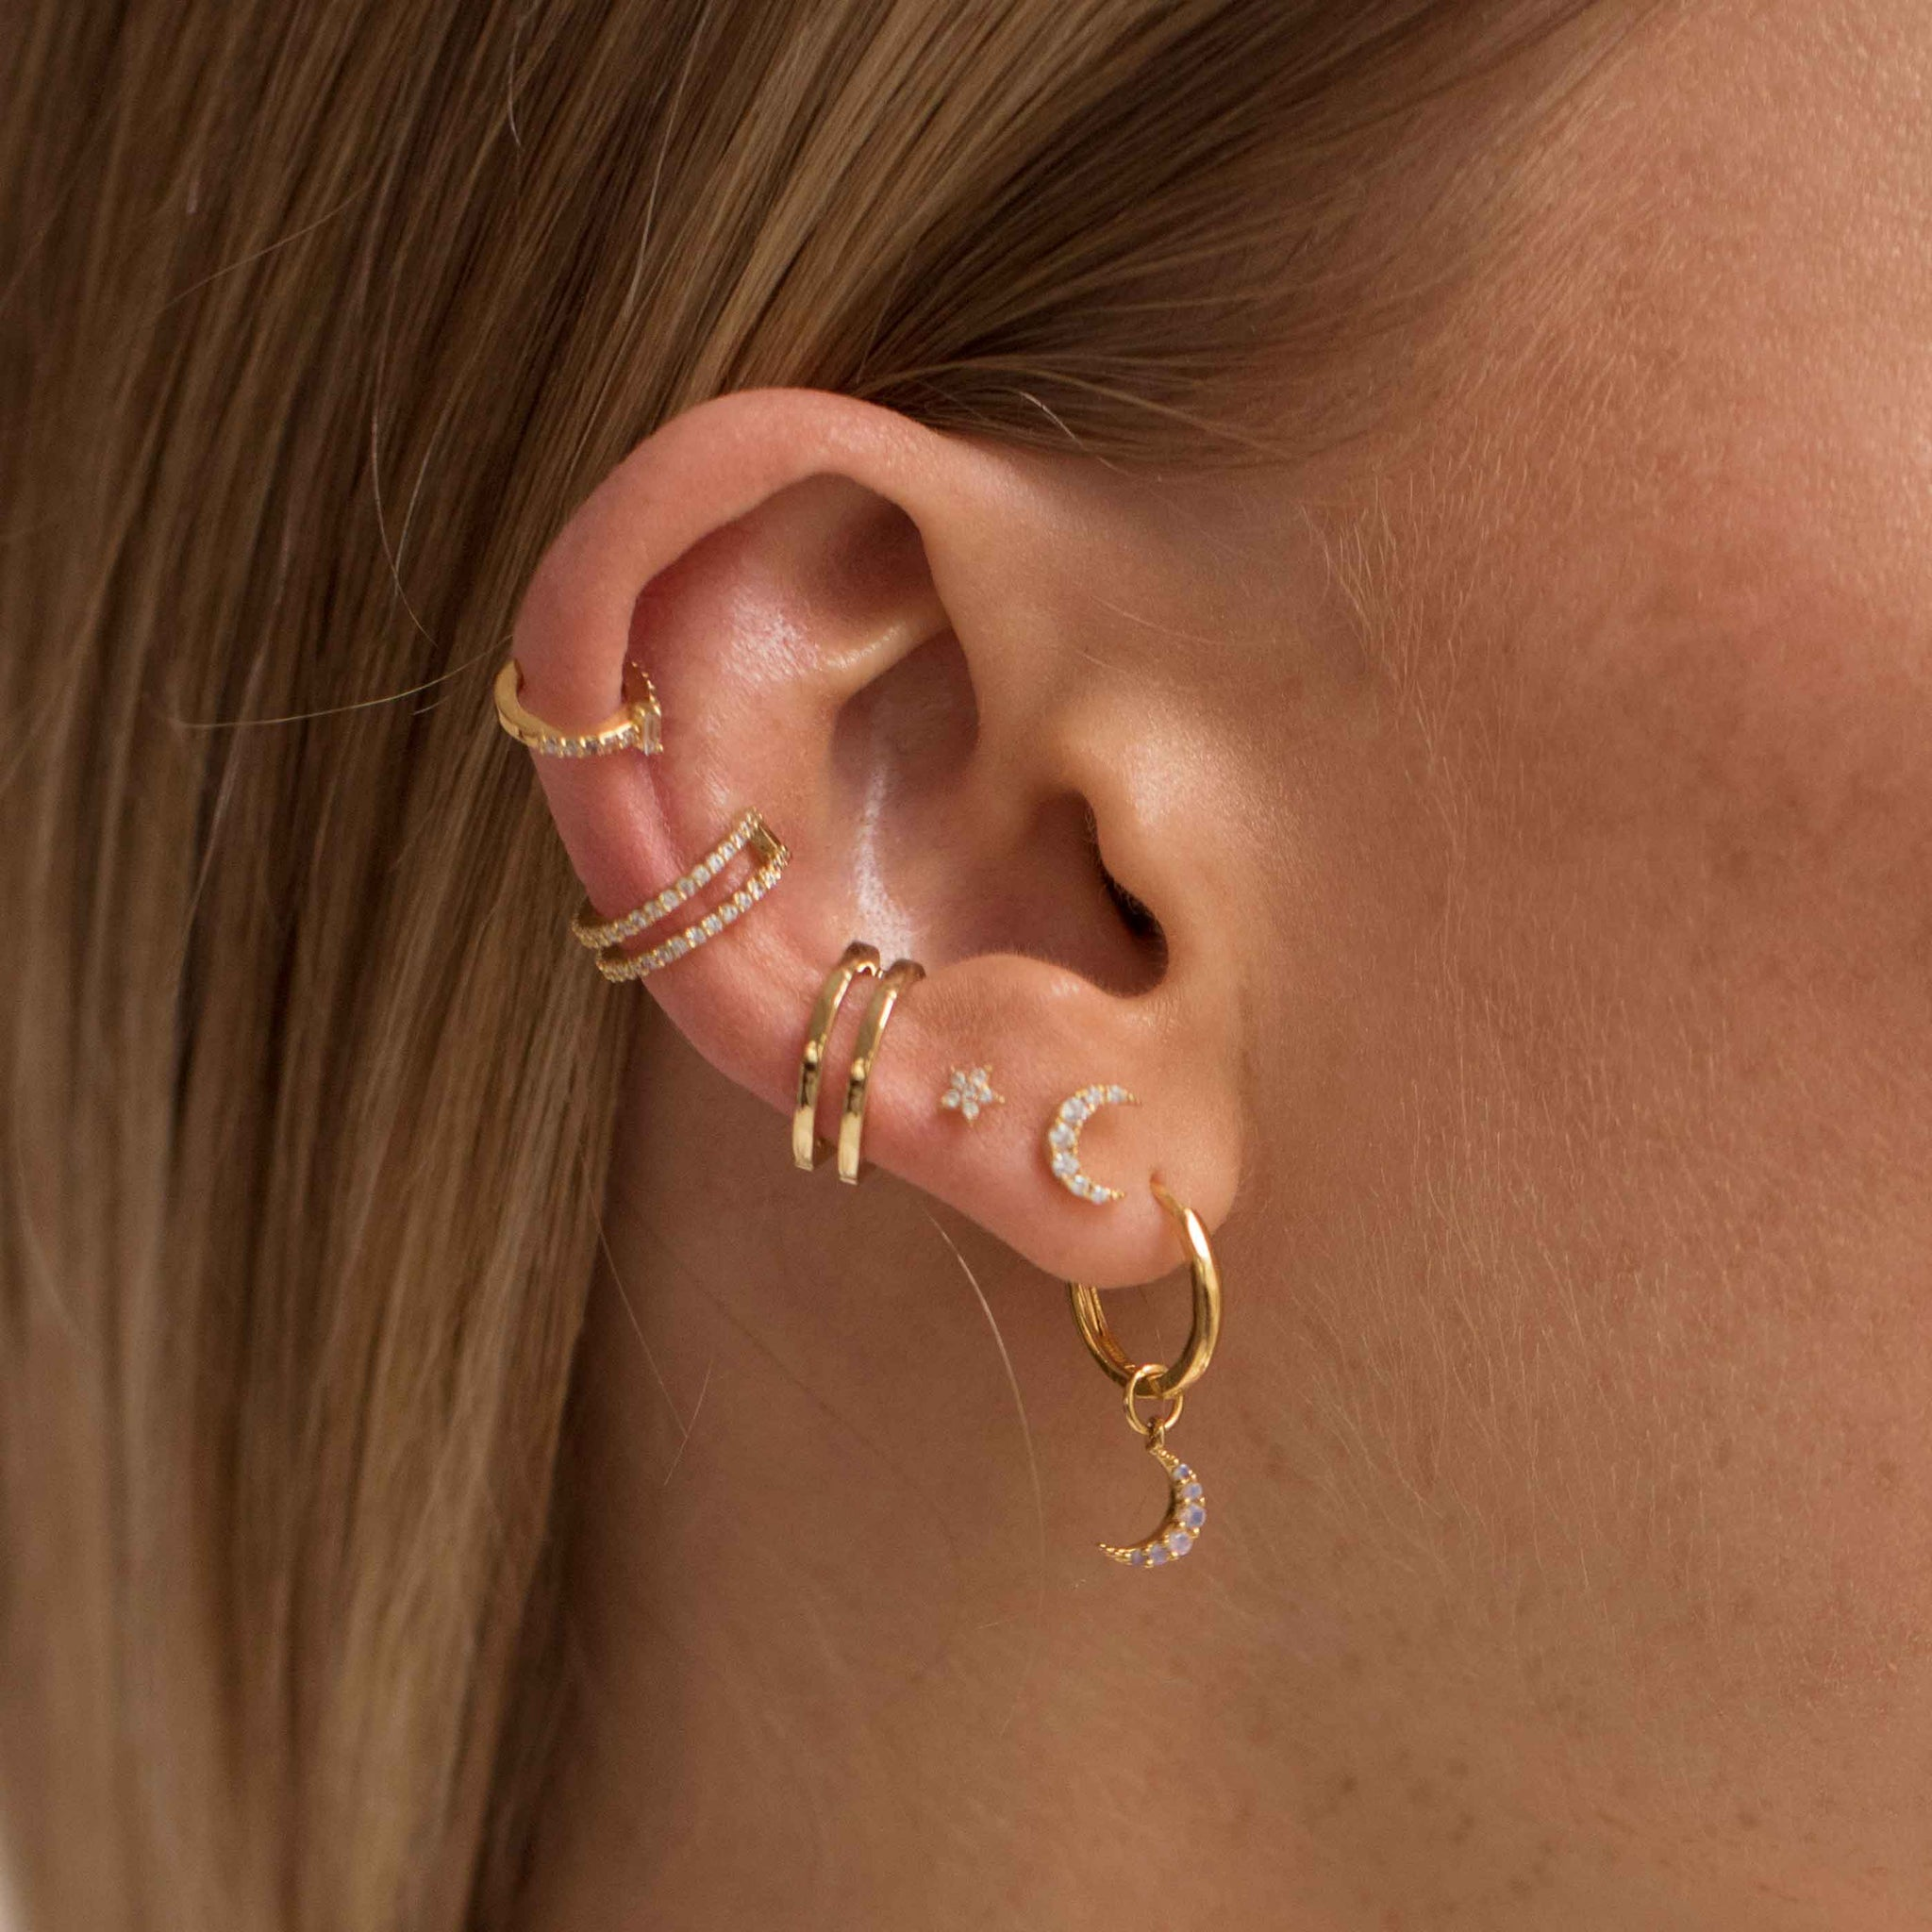 Mystic Moon Pendant Earrings in Gold worn with barbells and ear cuffs